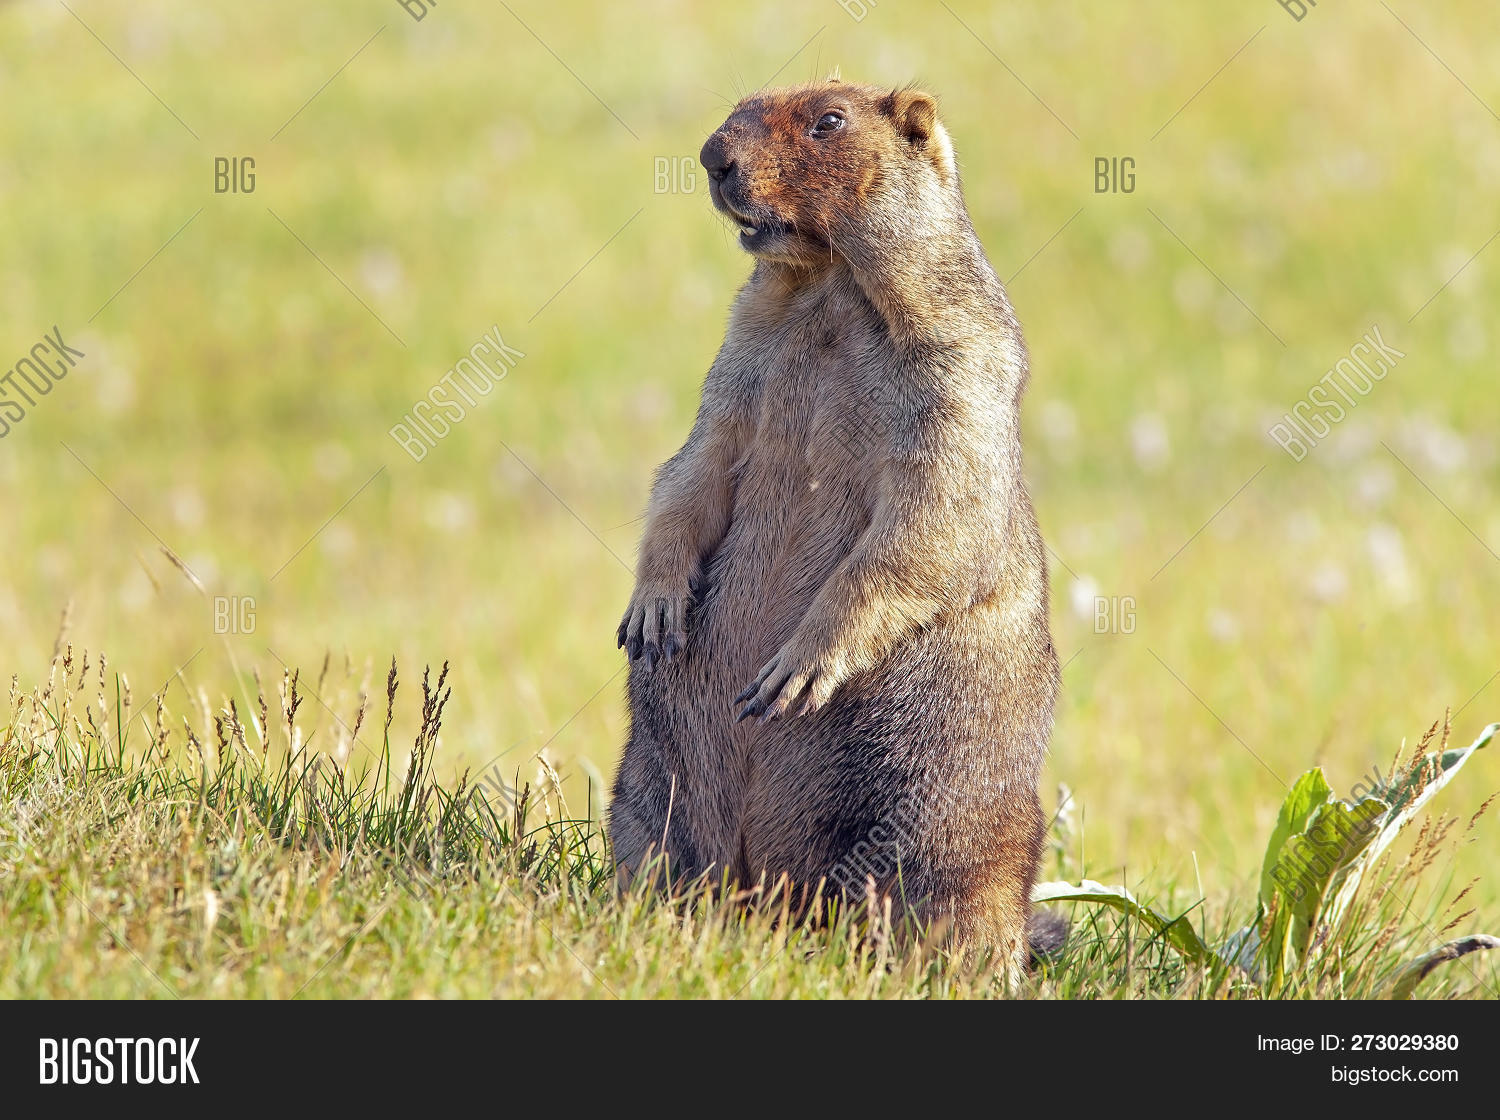 Funny Groundhog Fluffy Image & Photo (Free Trial)